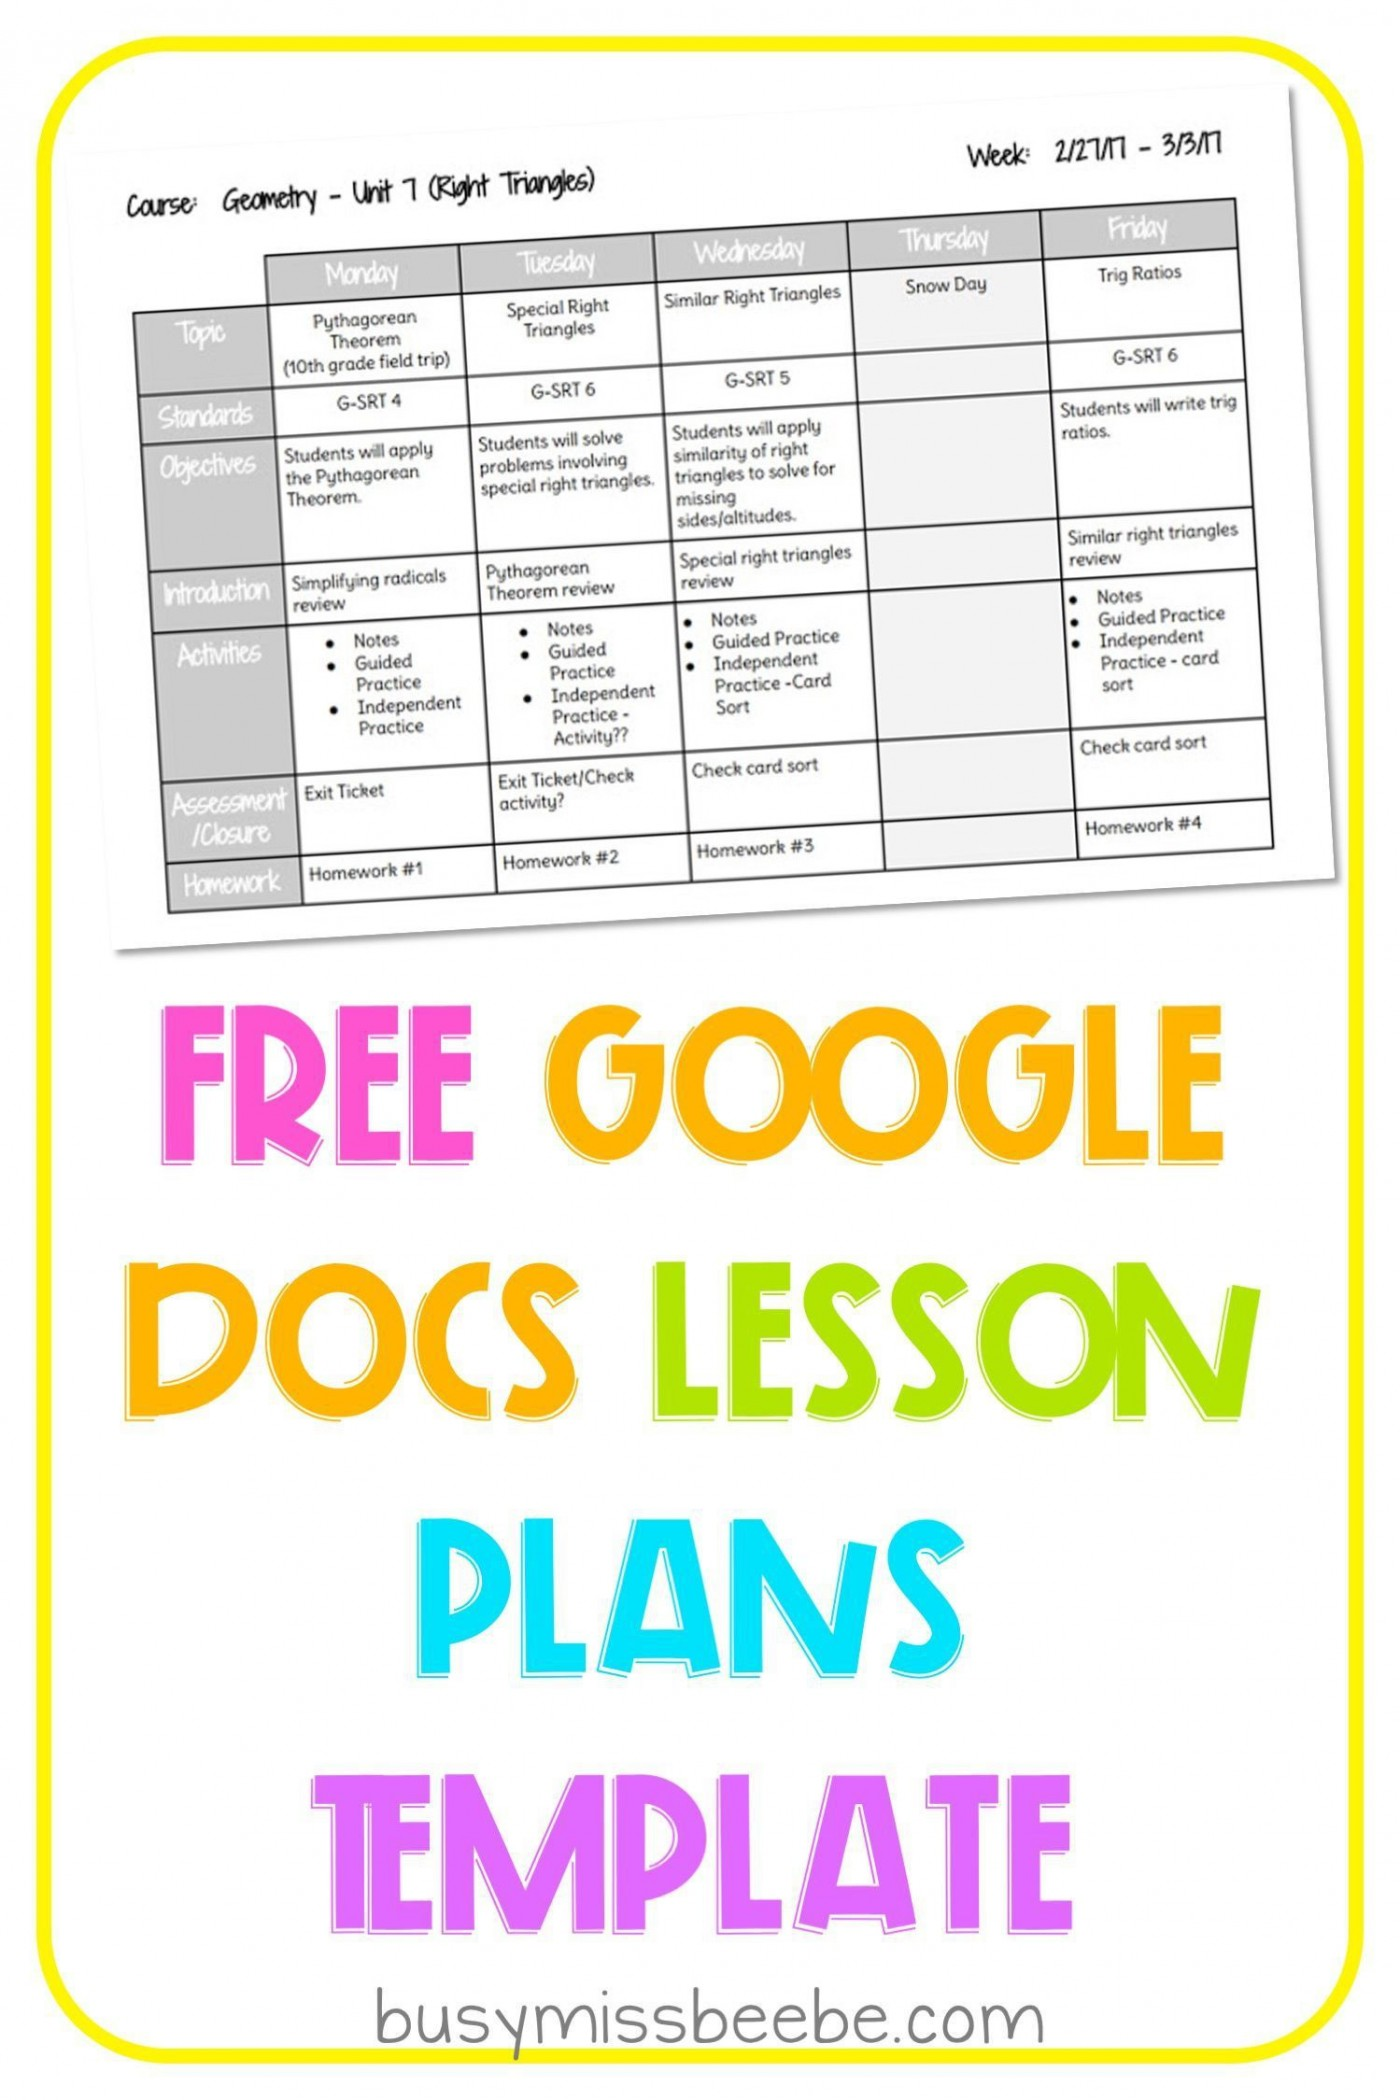 000 Wonderful Free Weekly Lesson Plan Template Google Doc Picture 1400